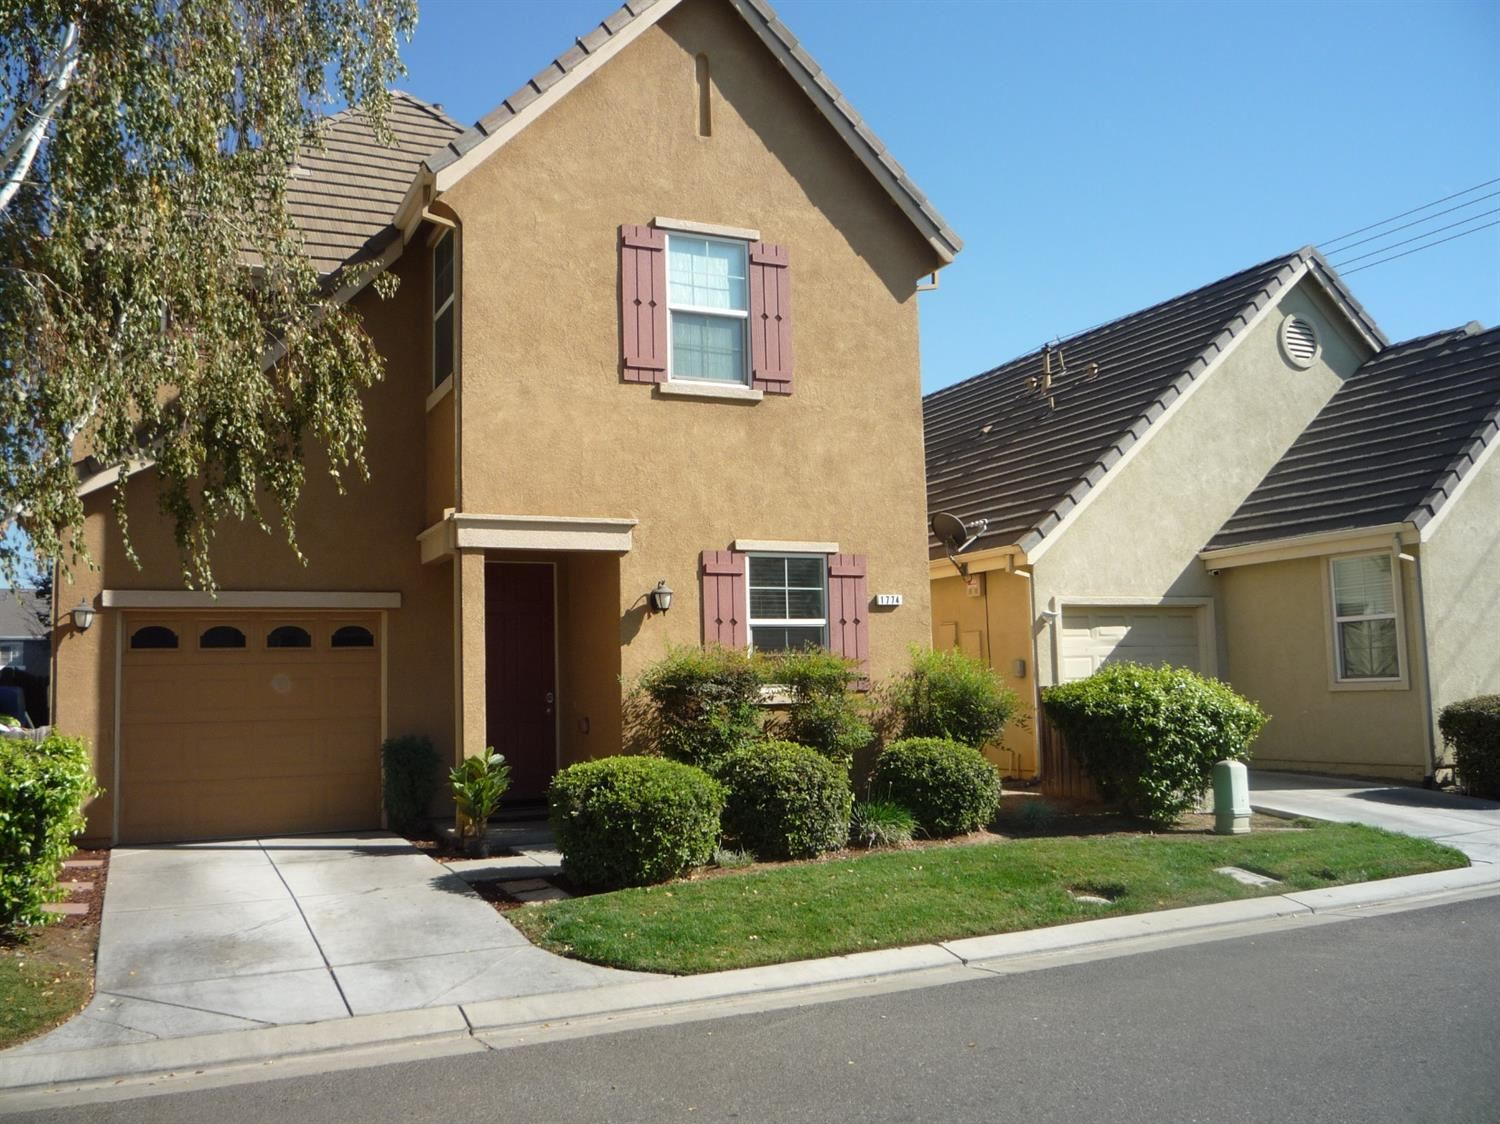 Photo of 1774 Norwood Heights Lane, Ceres, CA 95307 (MLS # 20063995)